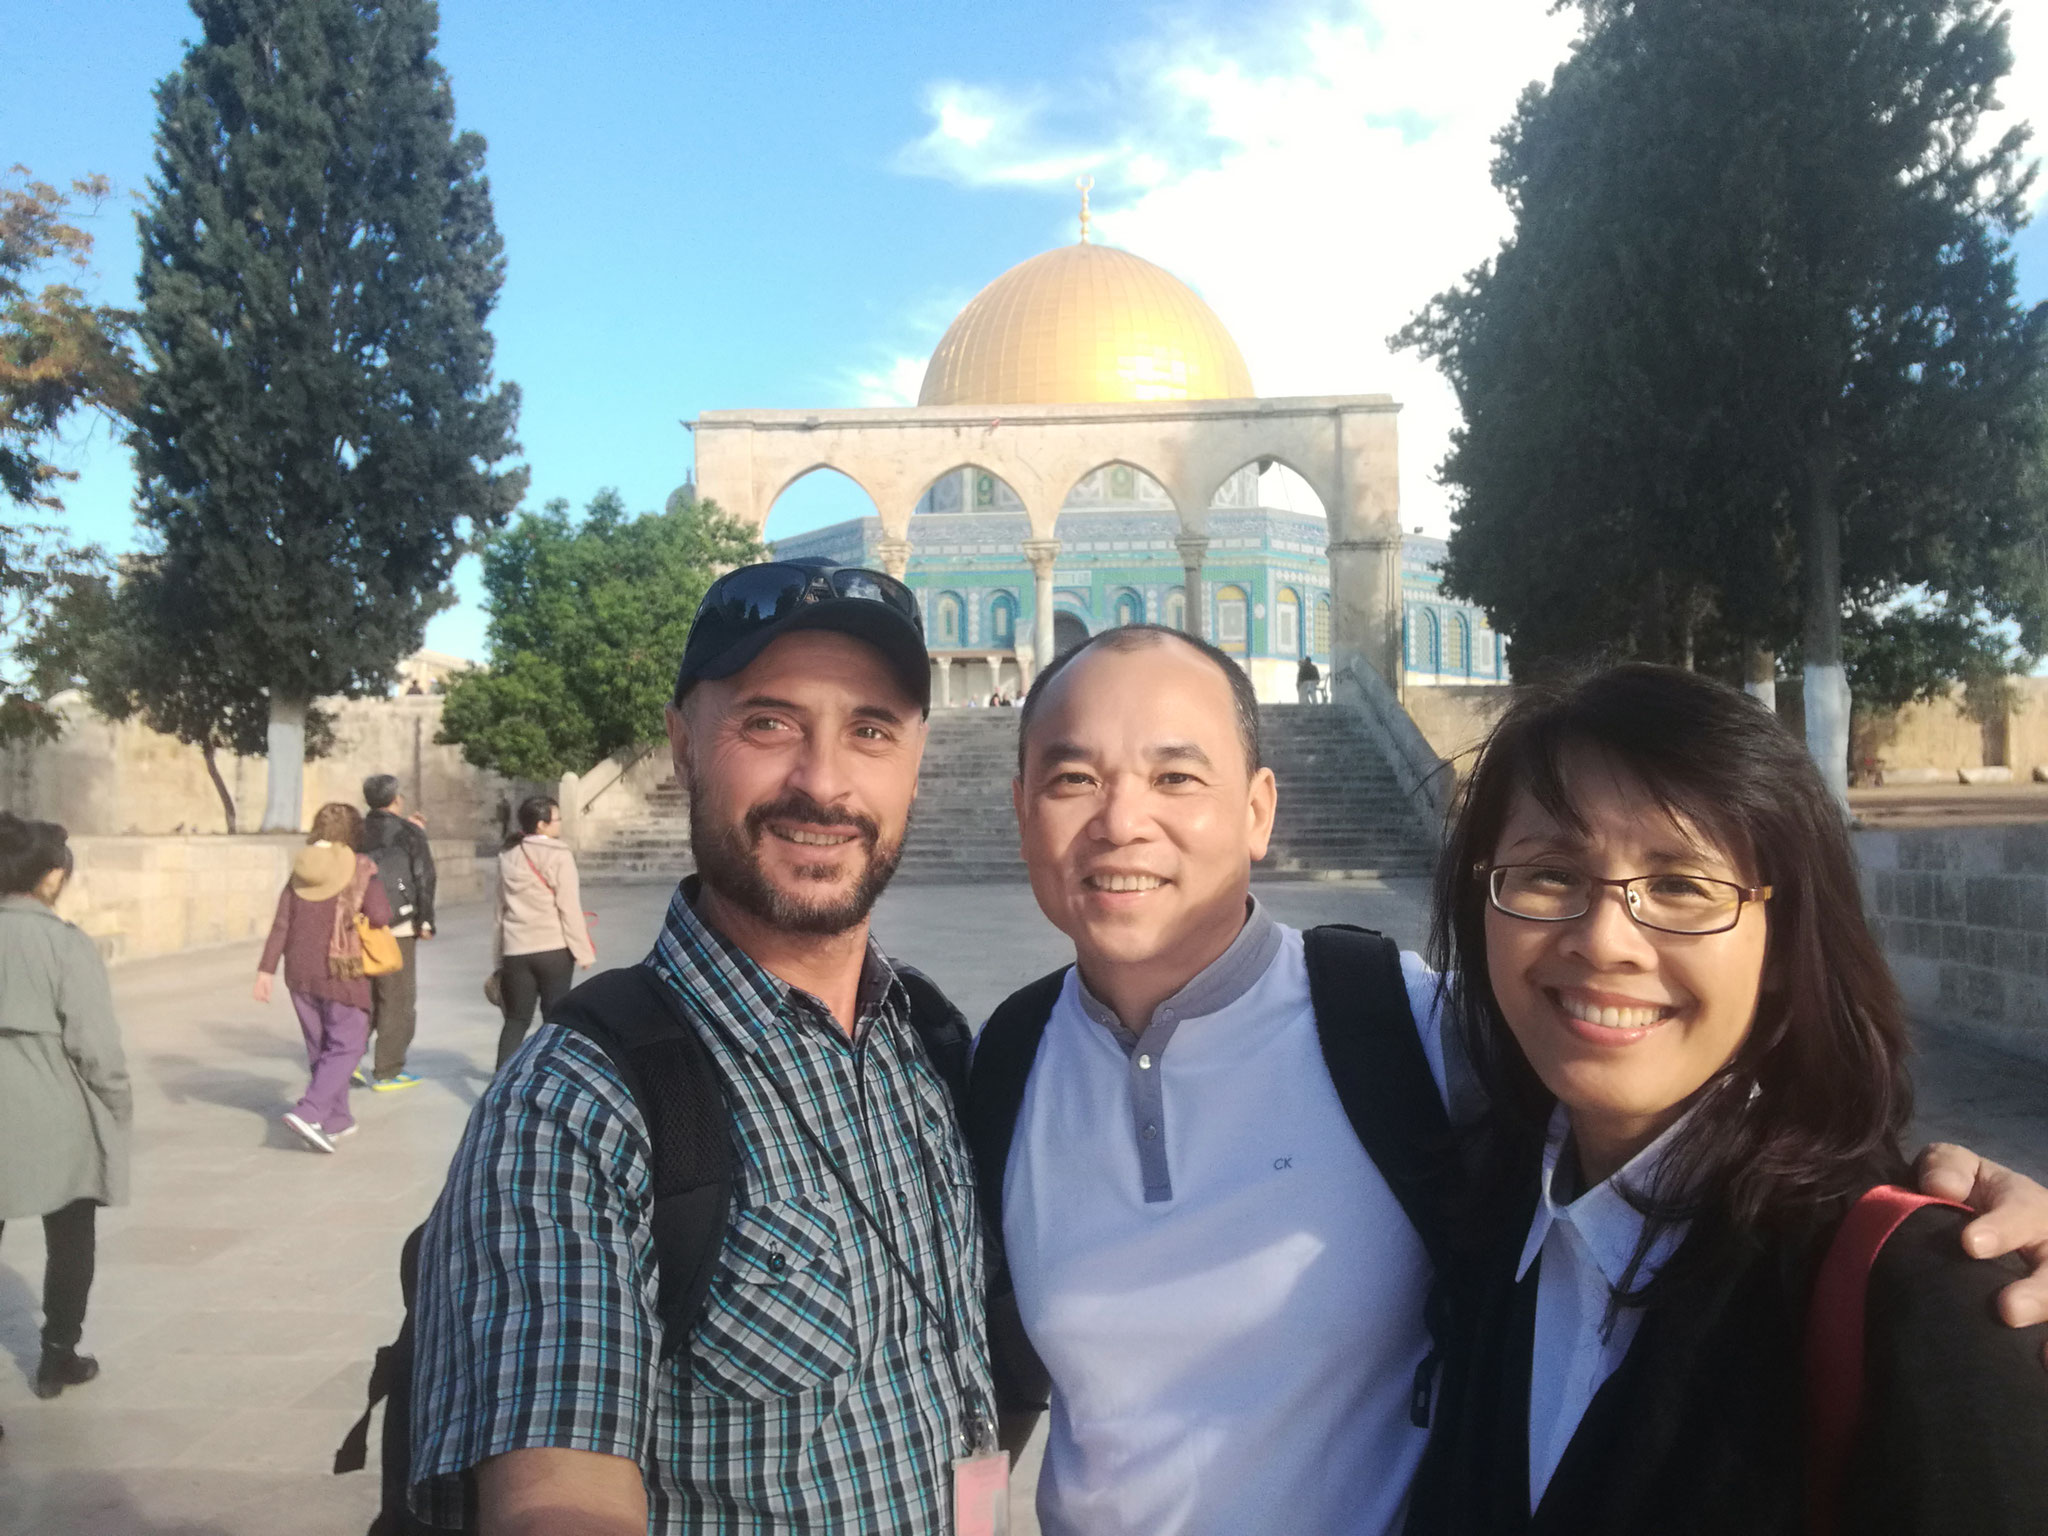 On the Temple Mount in Jerusalem